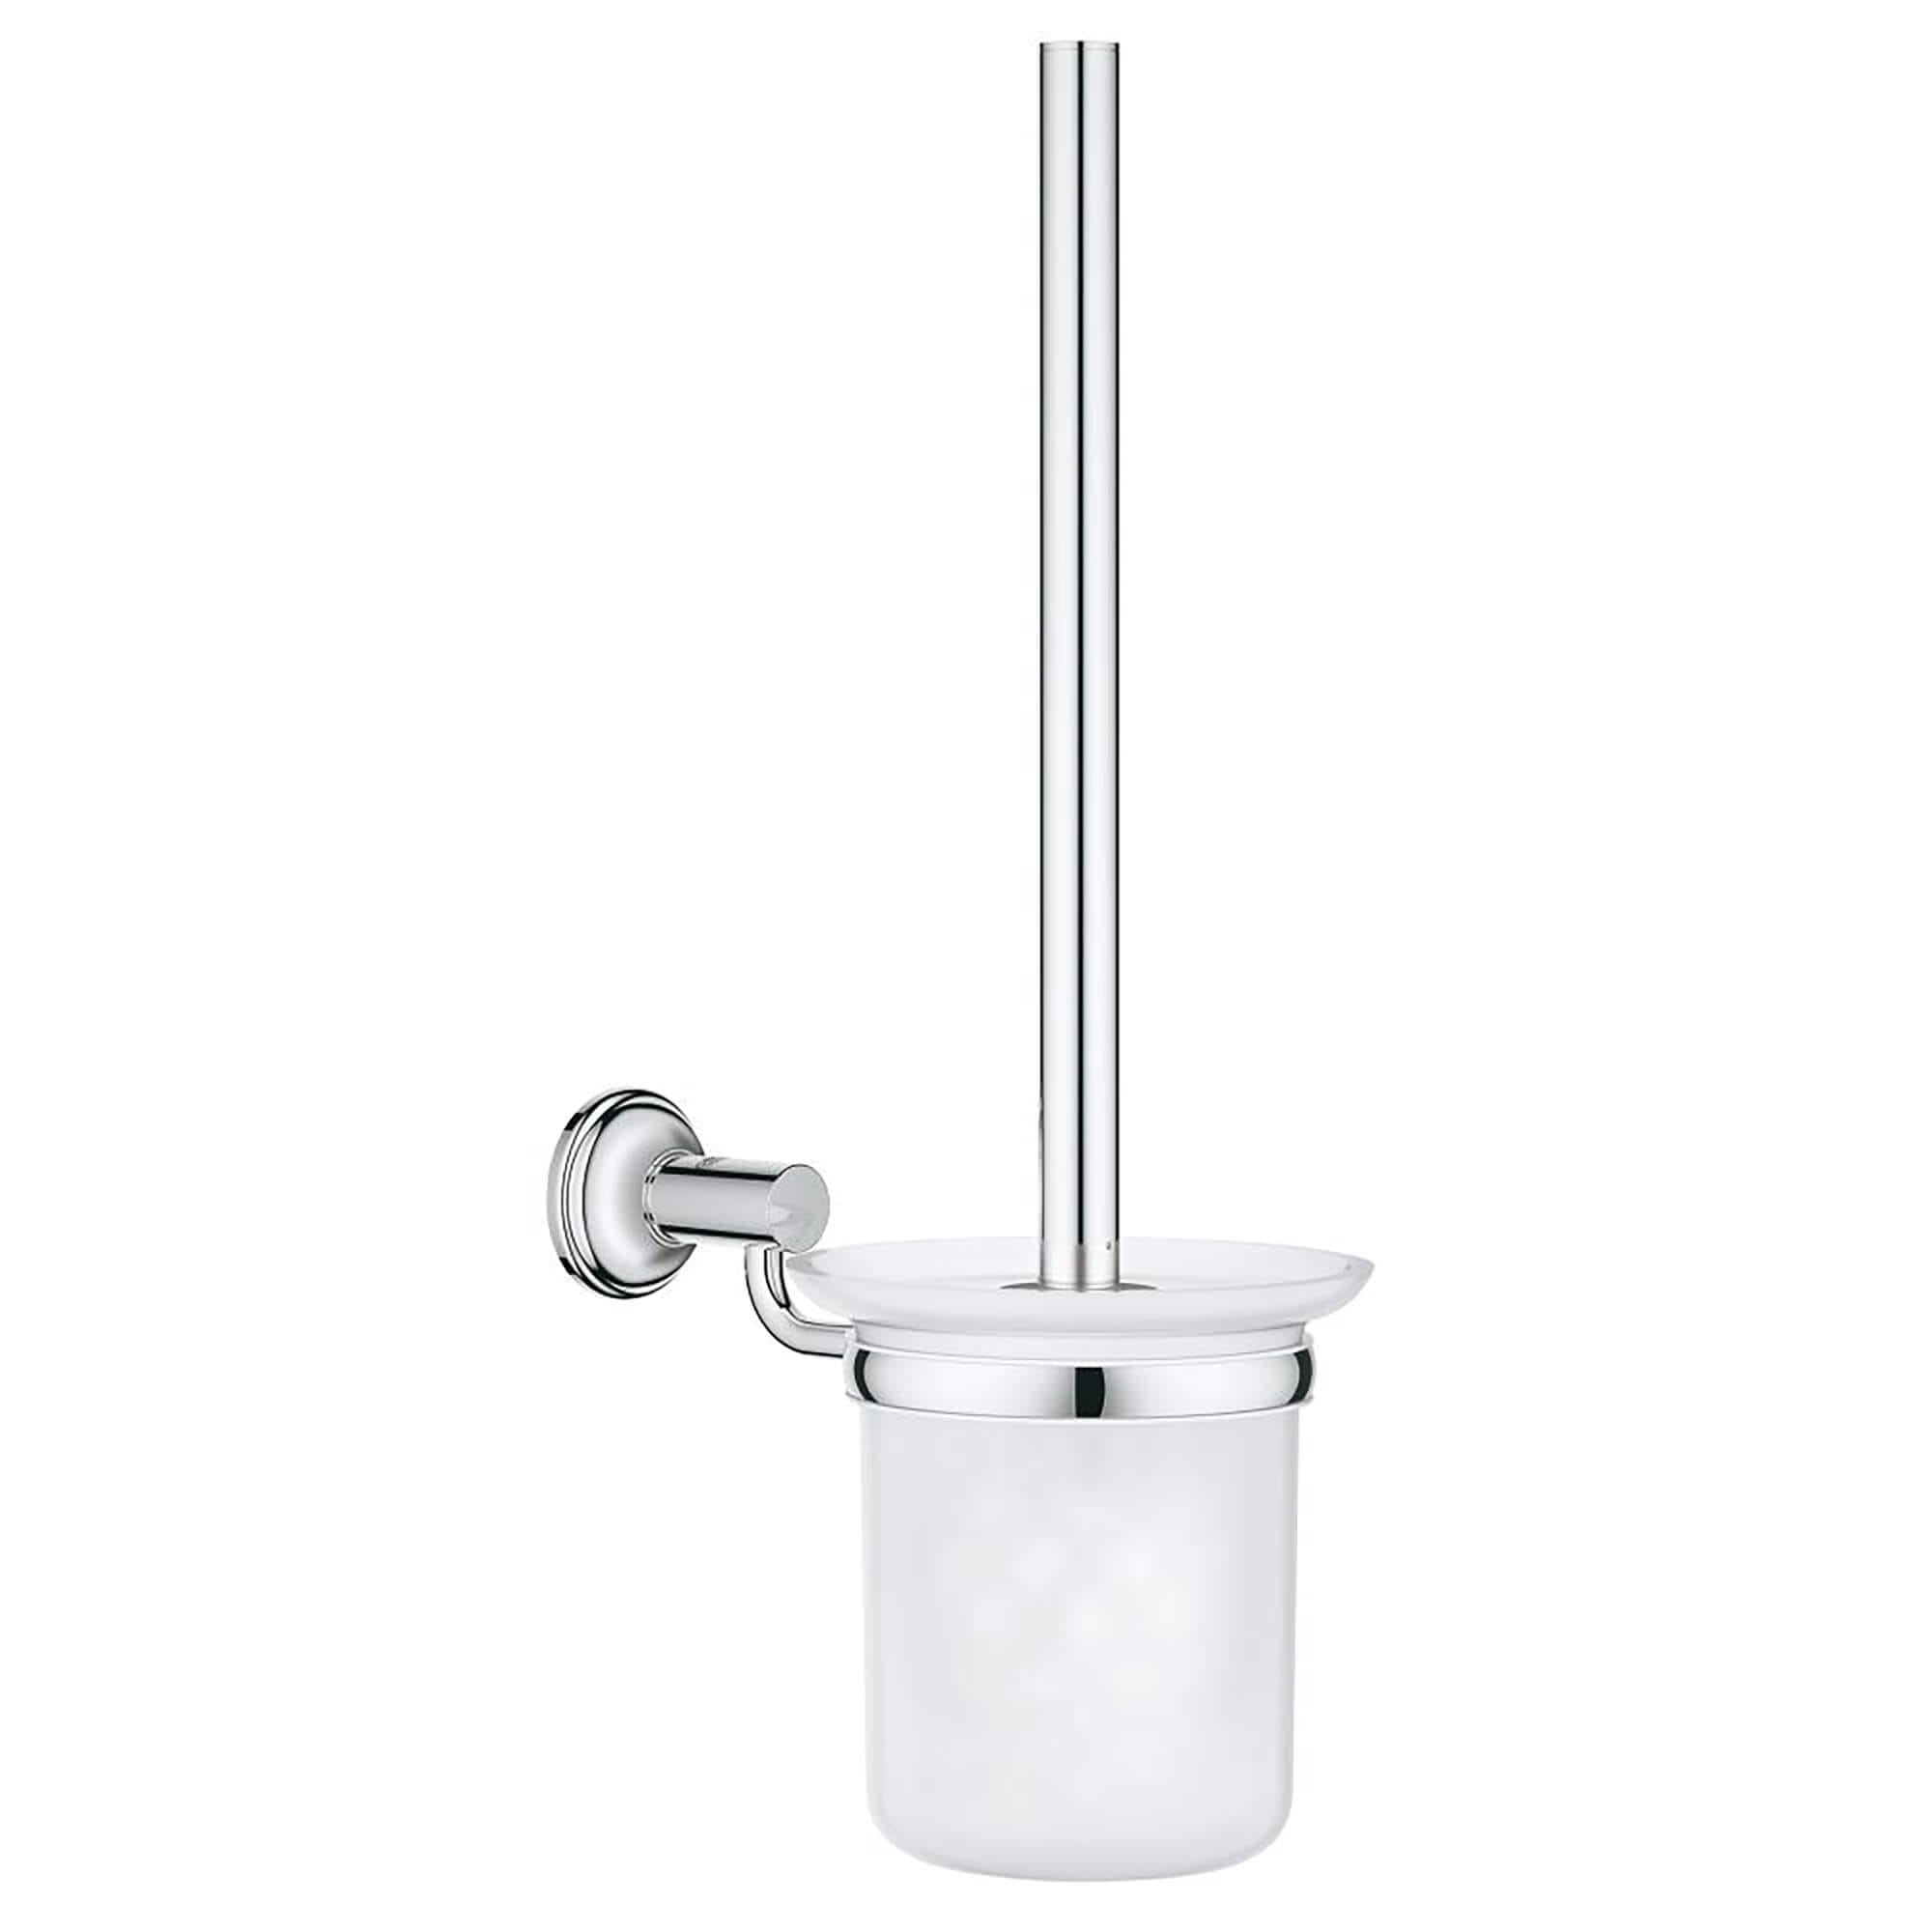 Toilet Brush Set GROHE CHROME